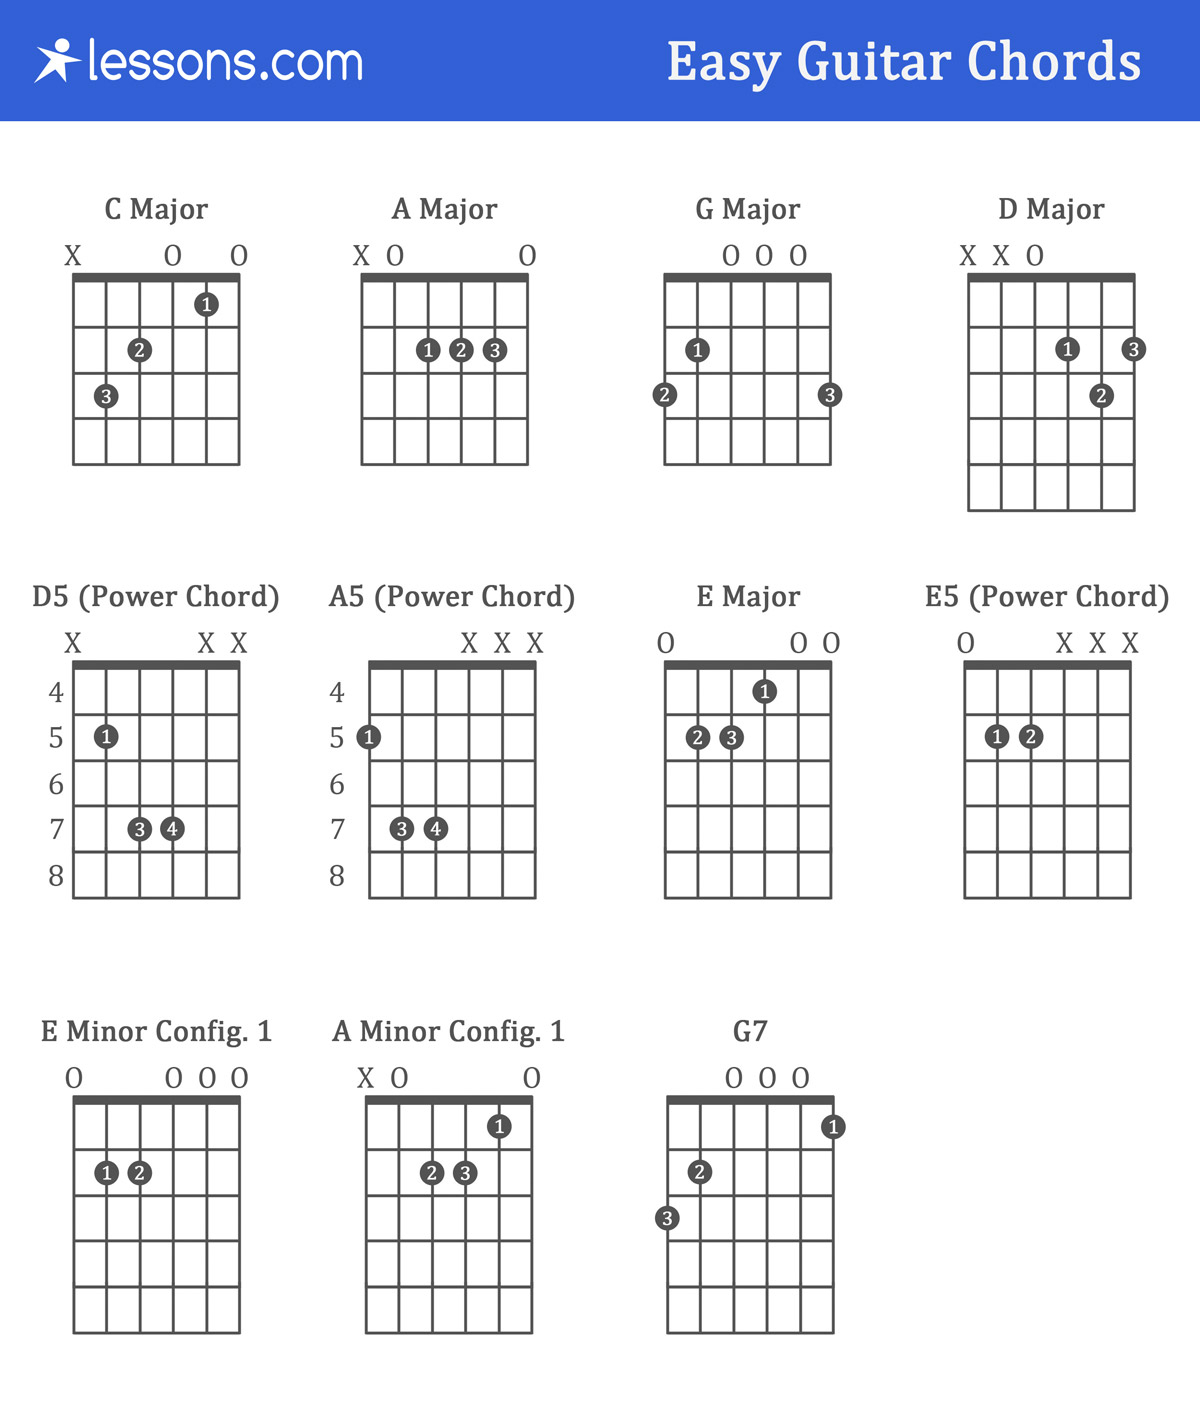 E Minor Chord The 11 Easy Guitar Chords For Beginners With Charts Examples